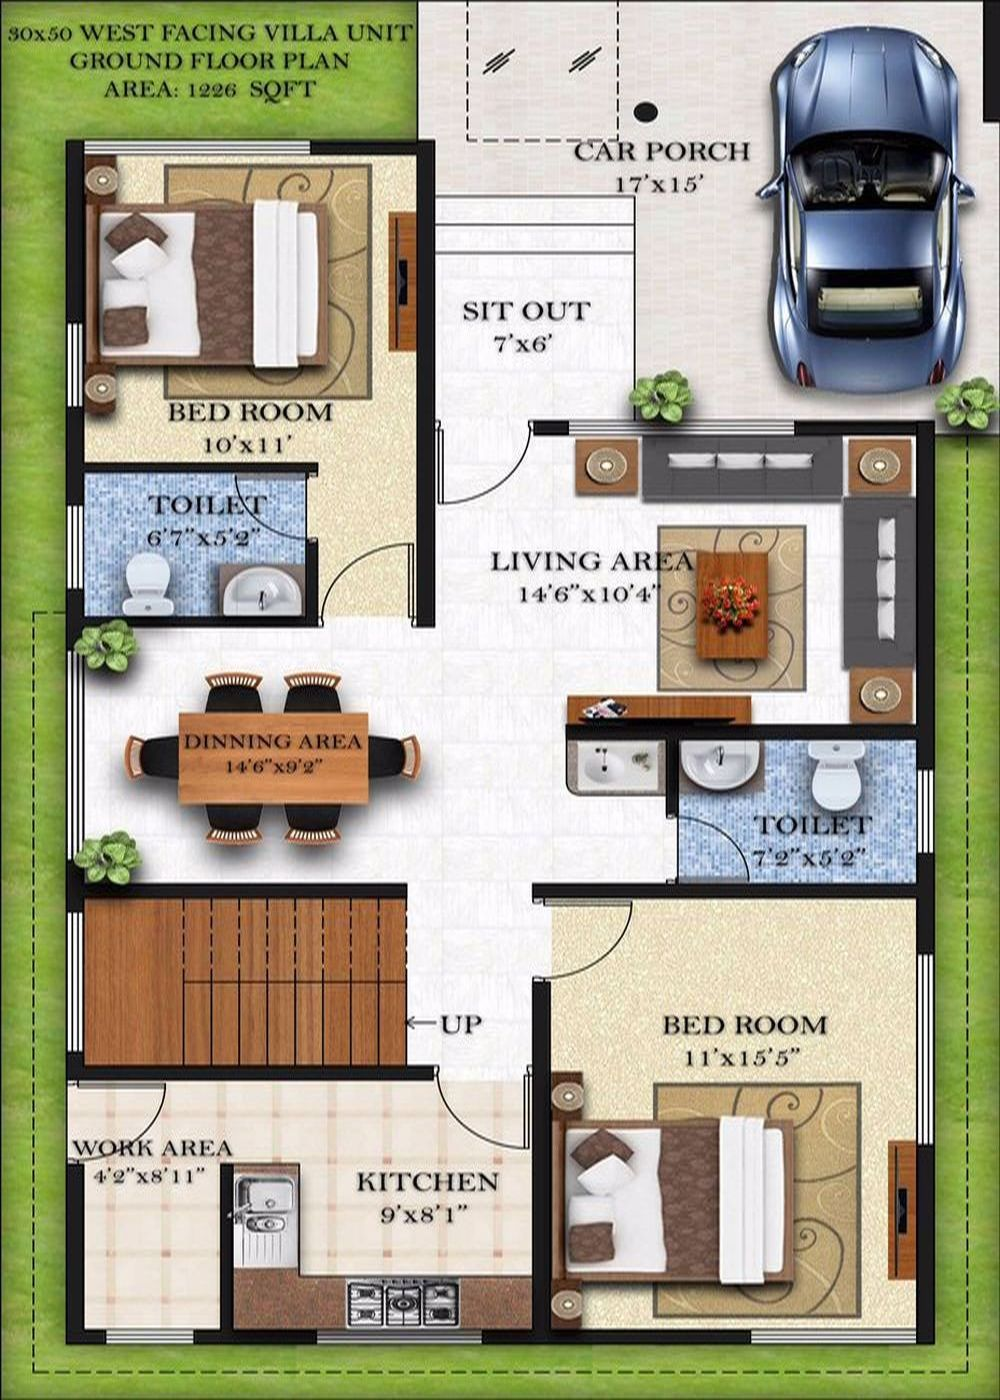 House design 40 x 80 - Ground Floor Plan 30x50 Ground Floor West